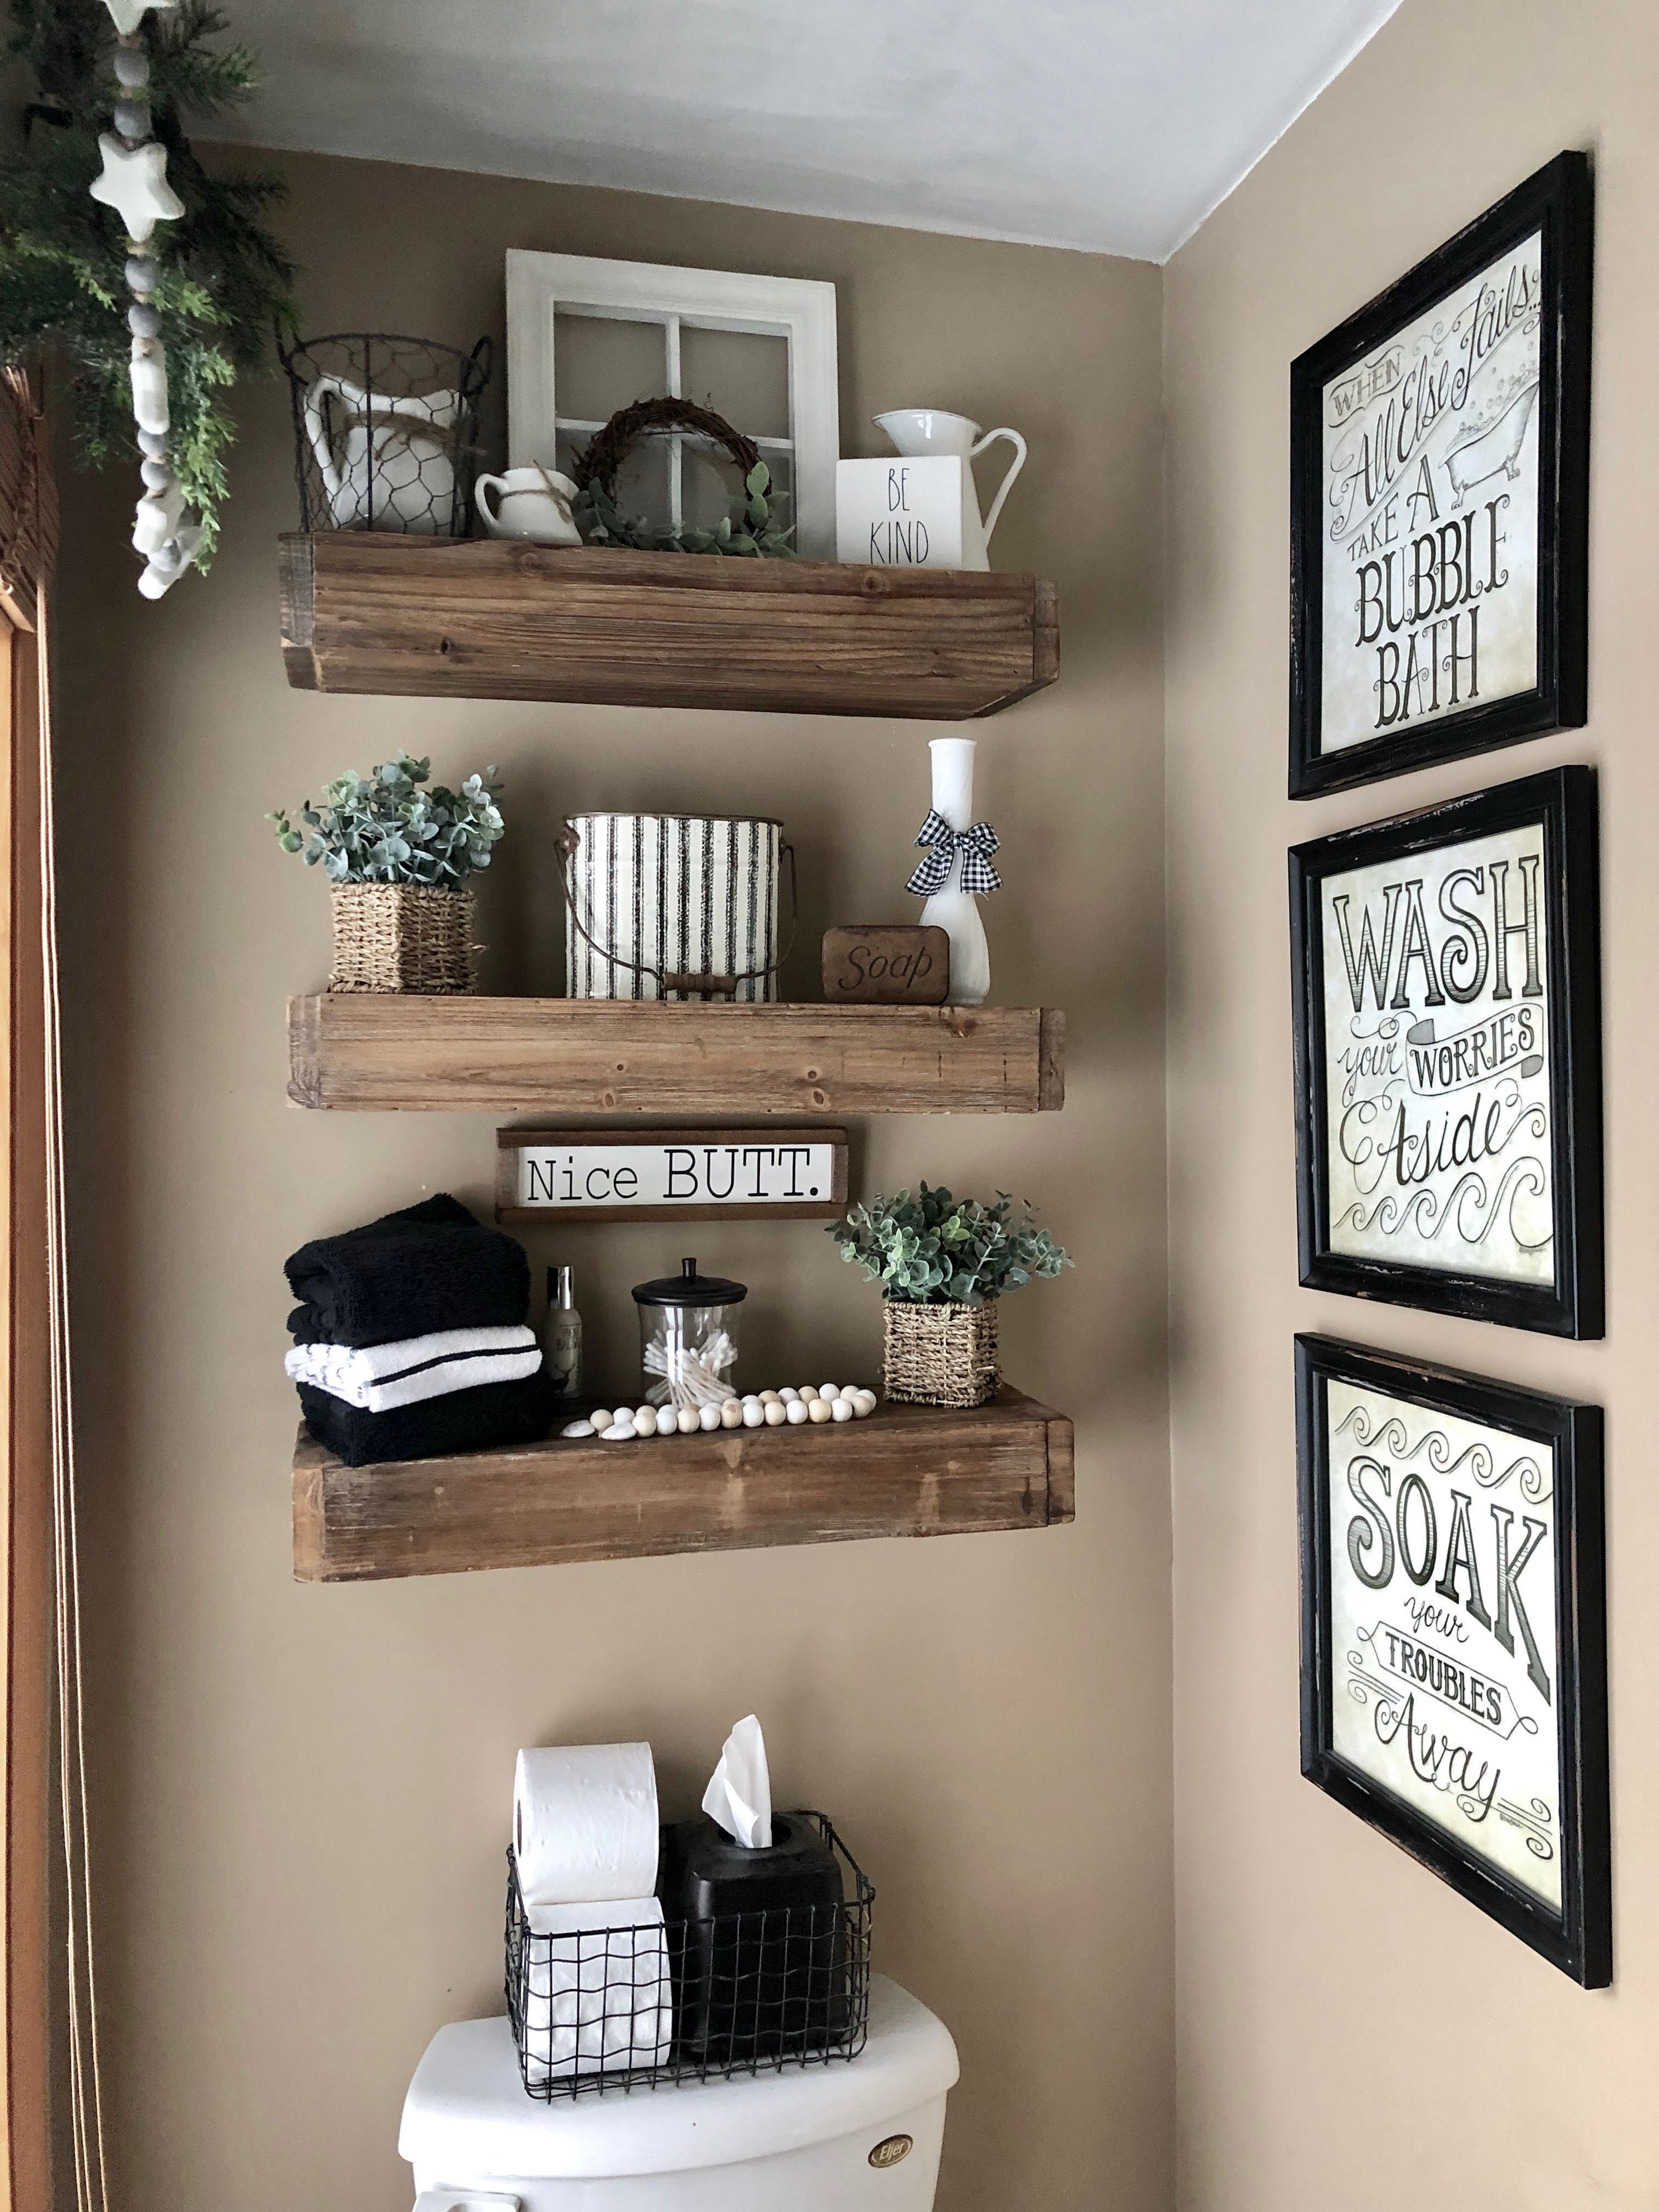 25 Amazing DIY Floating Shelves For Bathroom to Easy Organize Everything - SMART HOME & CAMPER